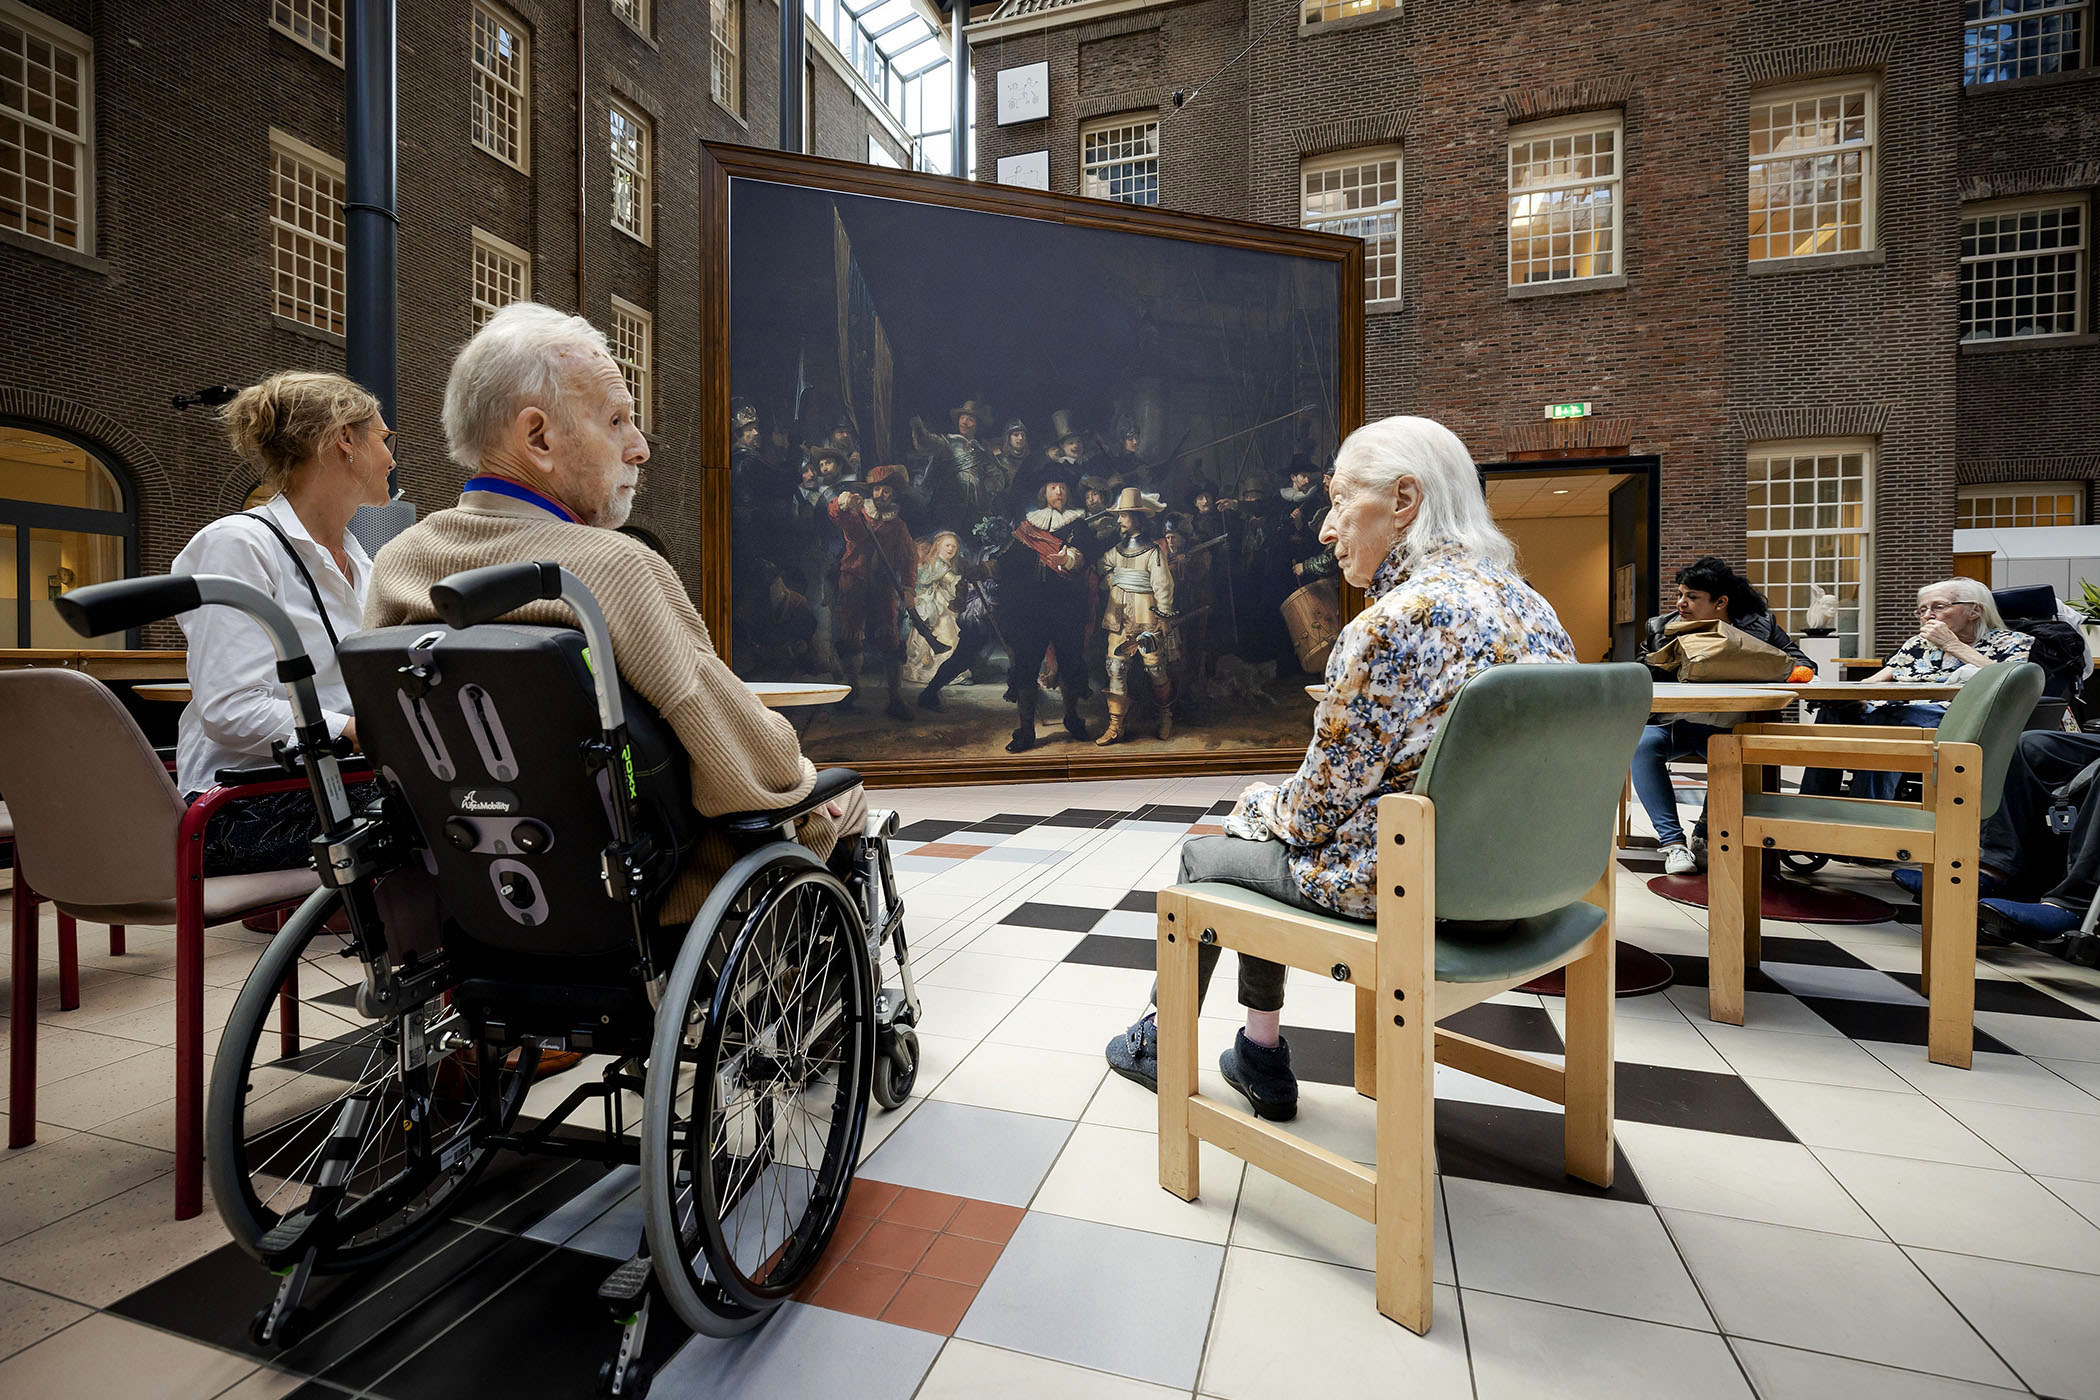 Older people sit in wheelchairs and in seats around a large Rembrandt painting,